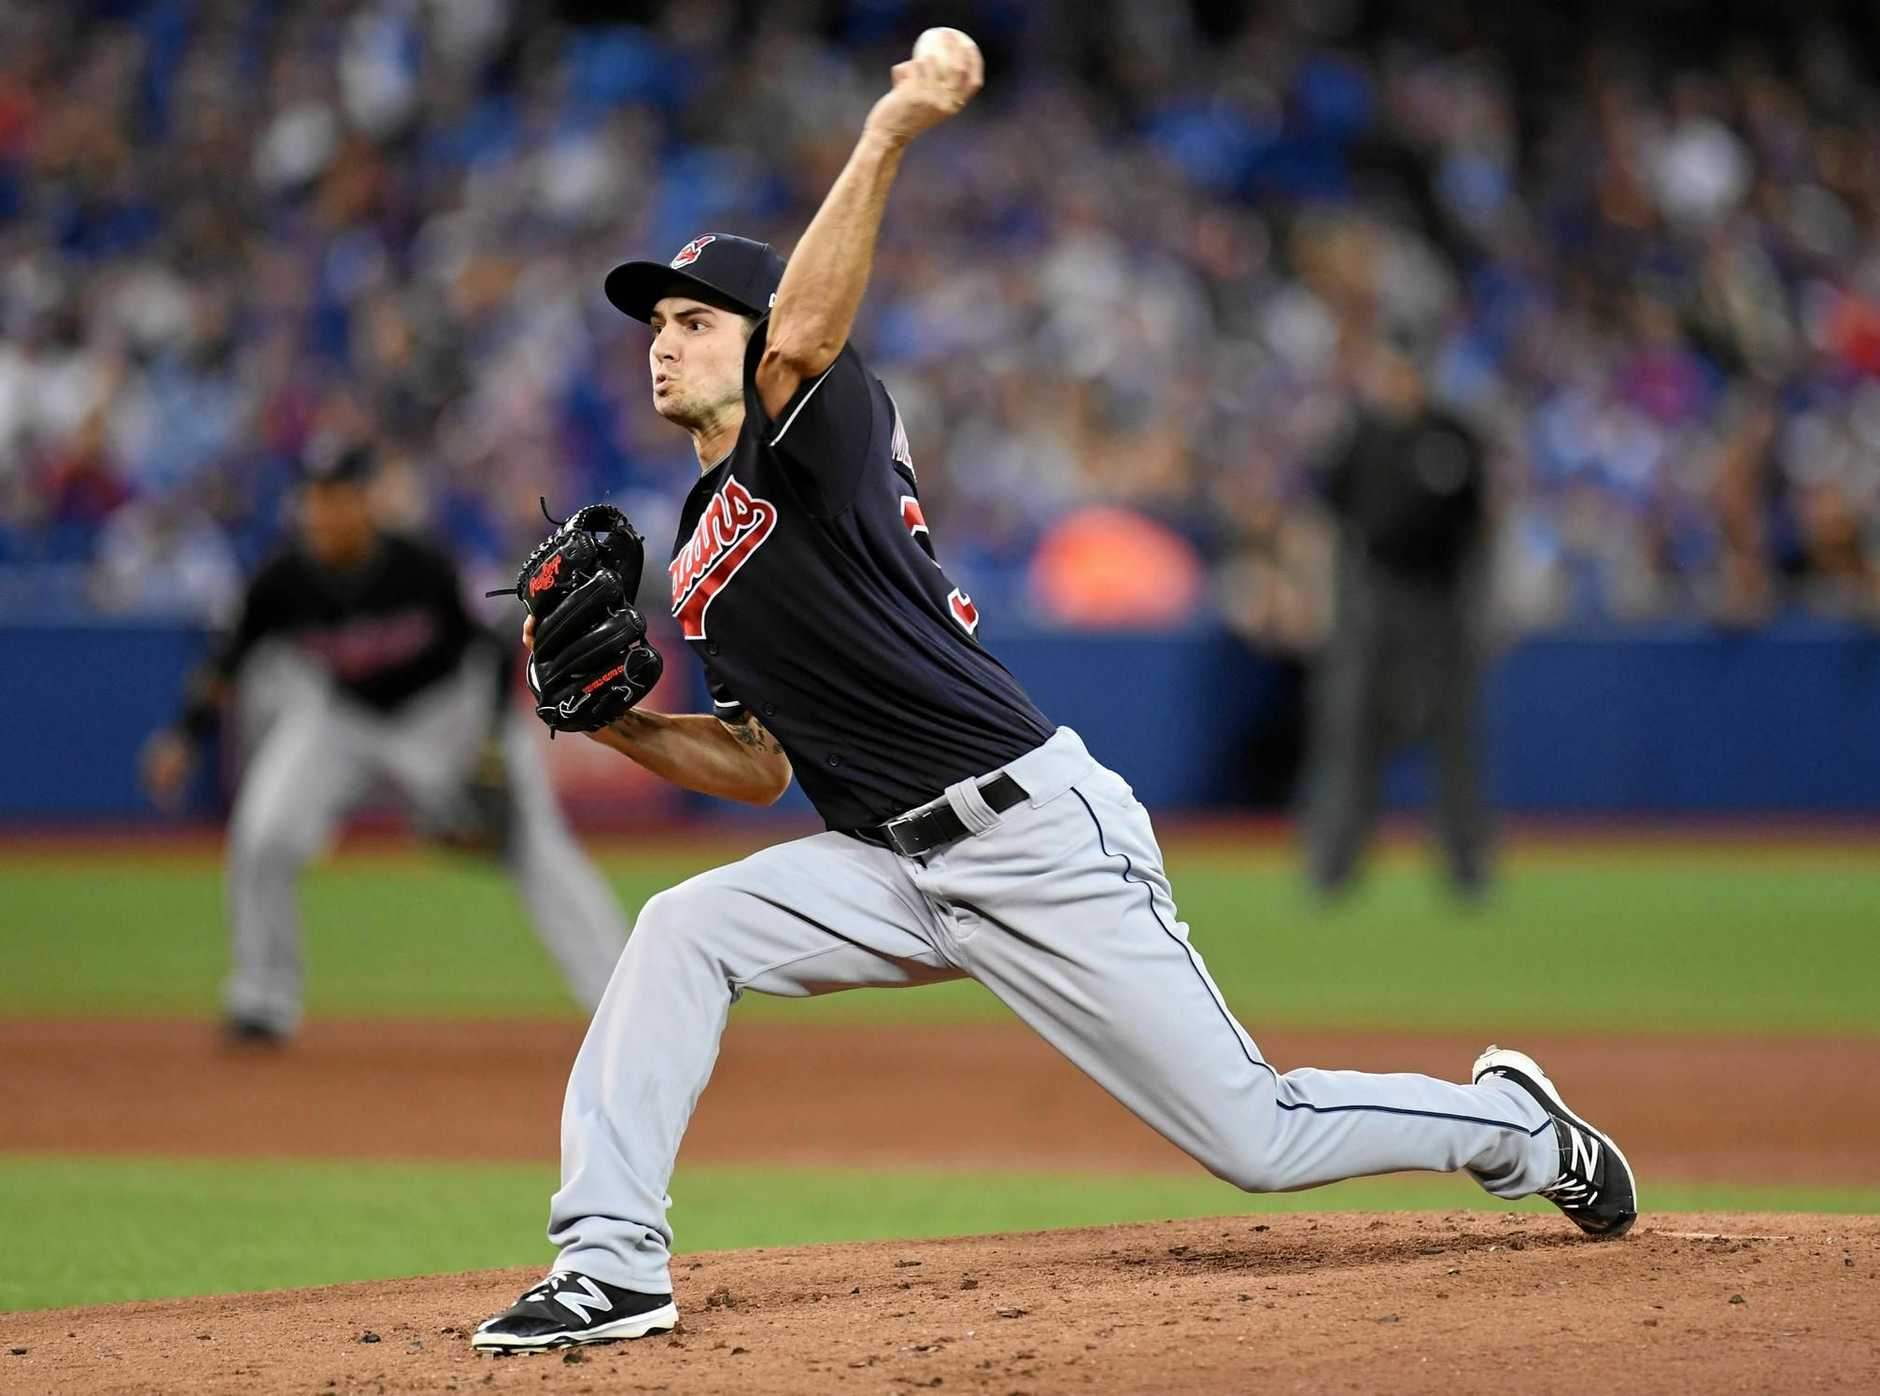 Cleveland Indians pitcher Ryan Merritt winds up against the Toronto Blue Jays.